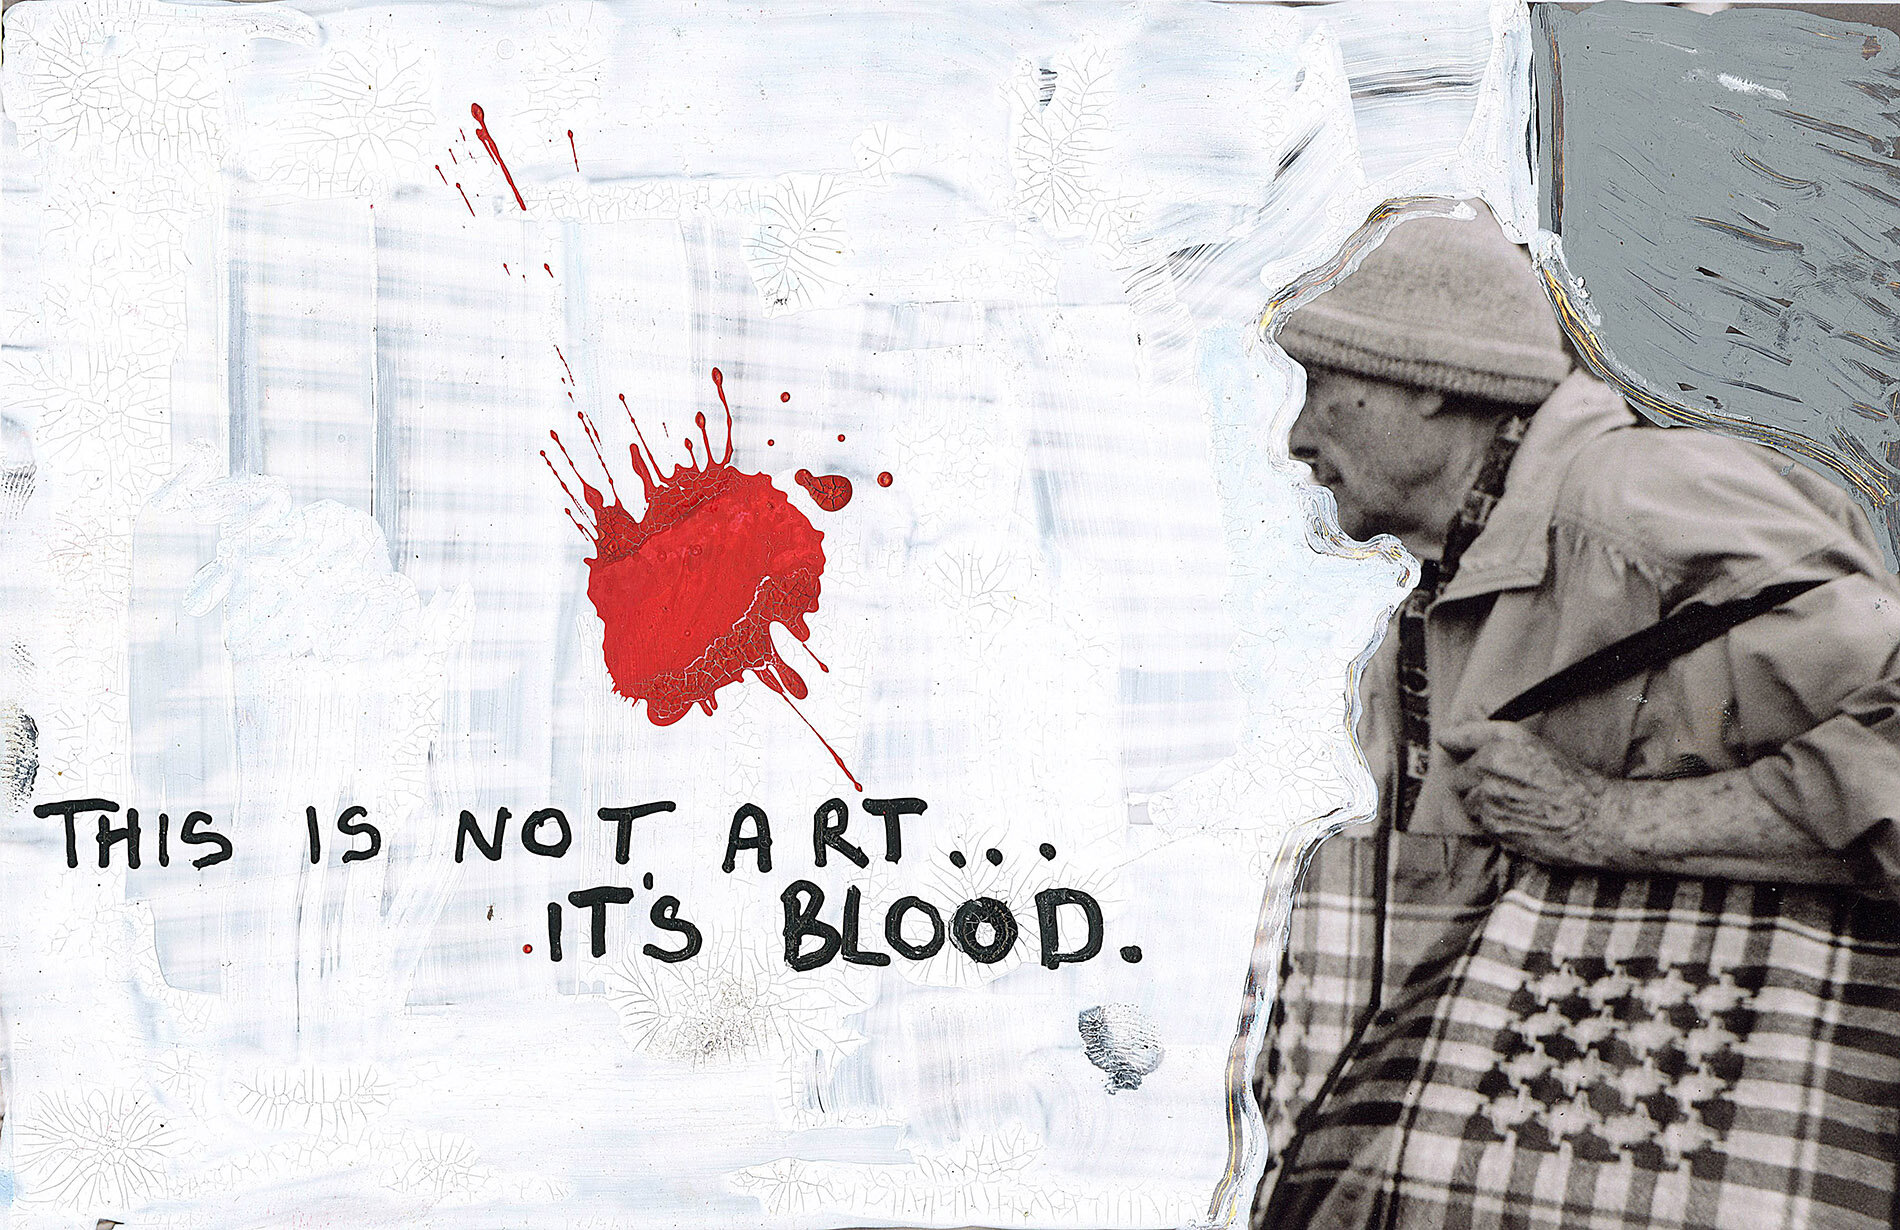 'This is not Art. Its Blood' 2019, Berlin, Inkjet photograph & Acrylic, 10x15cm